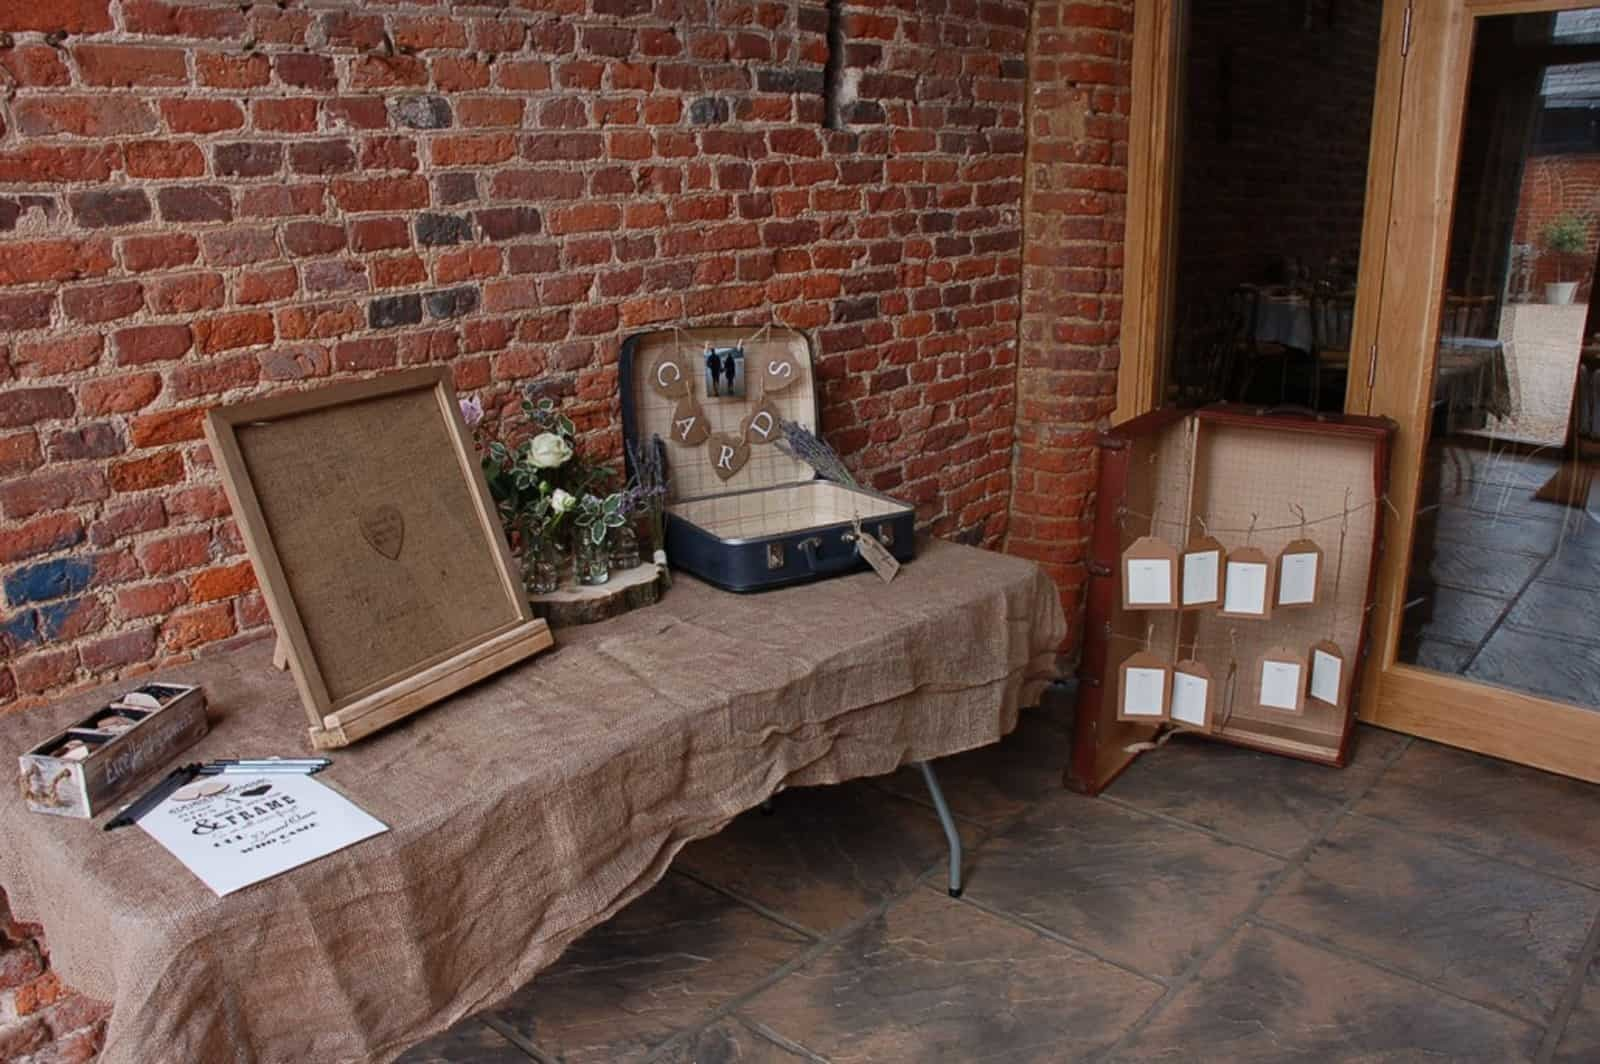 Wedding Tags, Cards and Frames